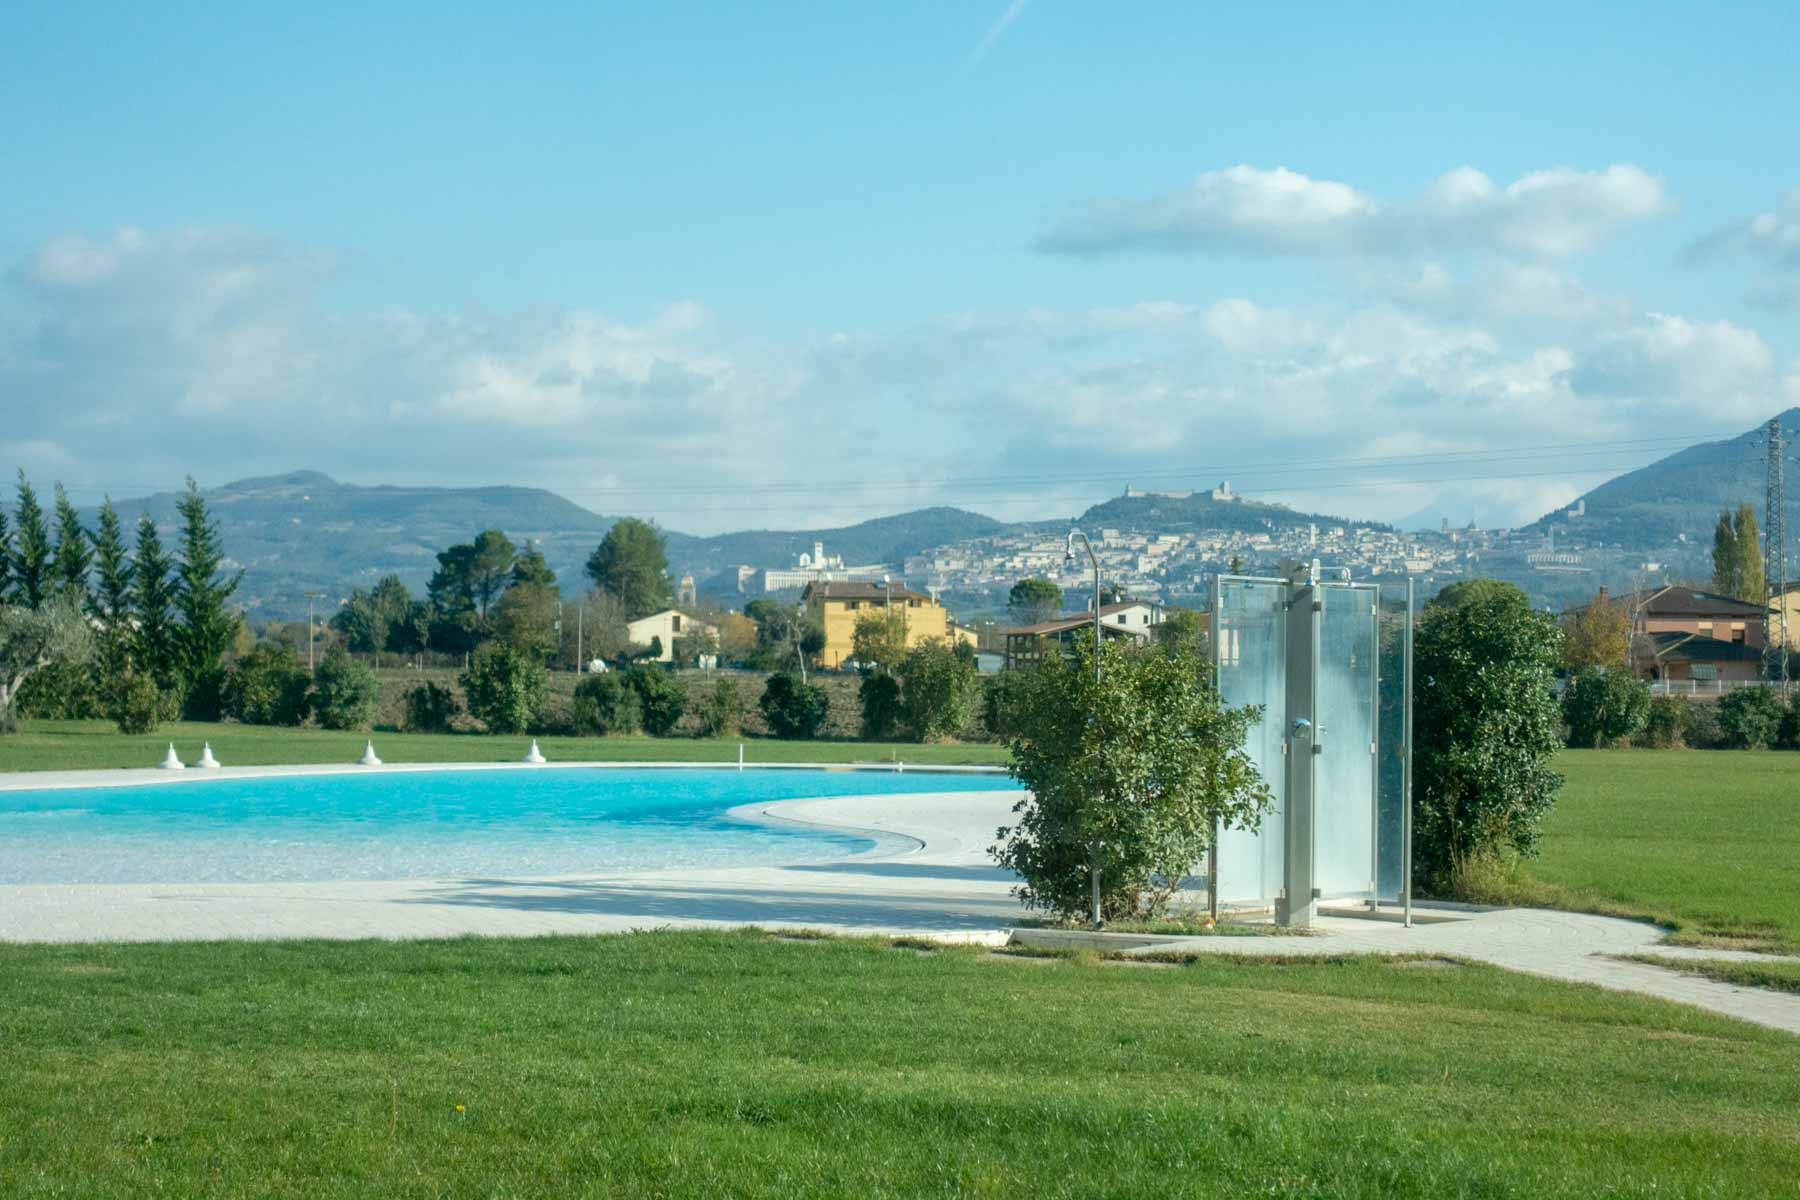 Valle di Assisi Hotel Spa & Golf piscina esterna